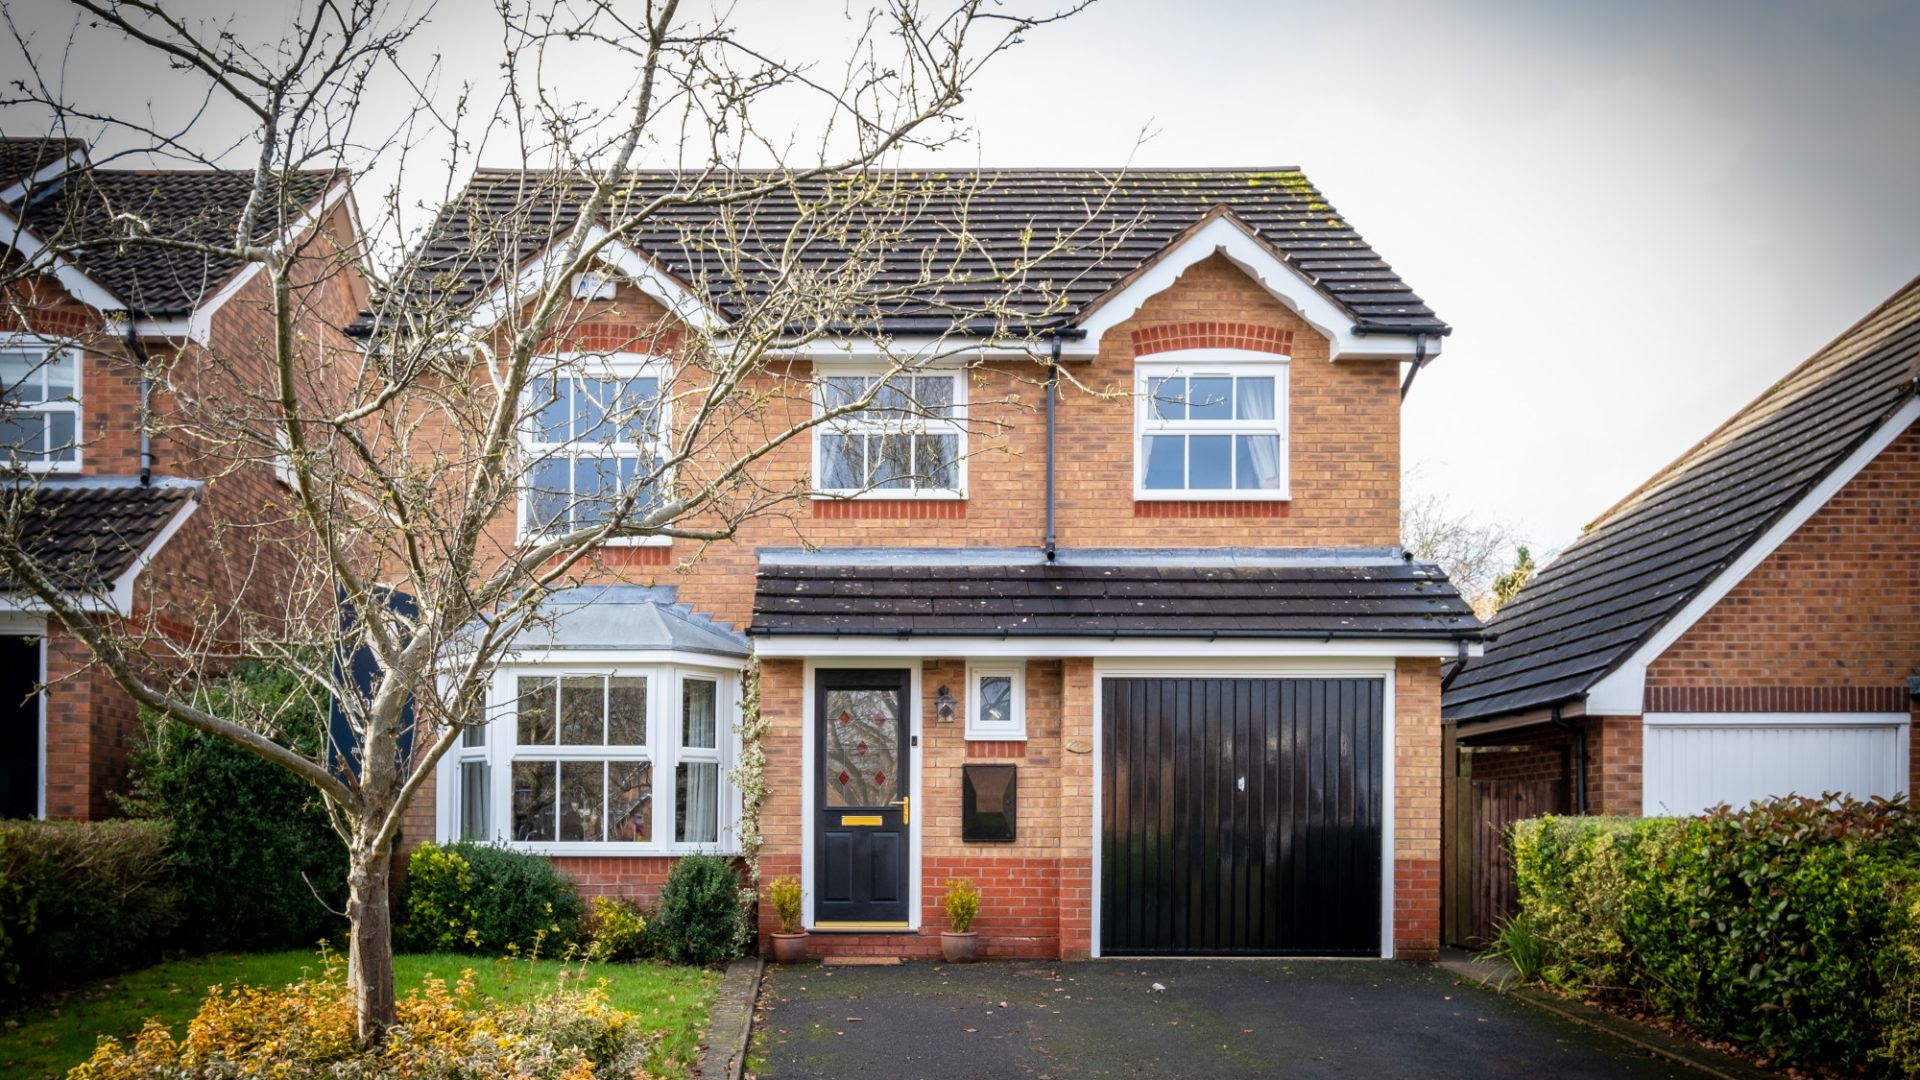 Cranford Grove, Solihull for sale with Mr and Mrs Clarke estate agent